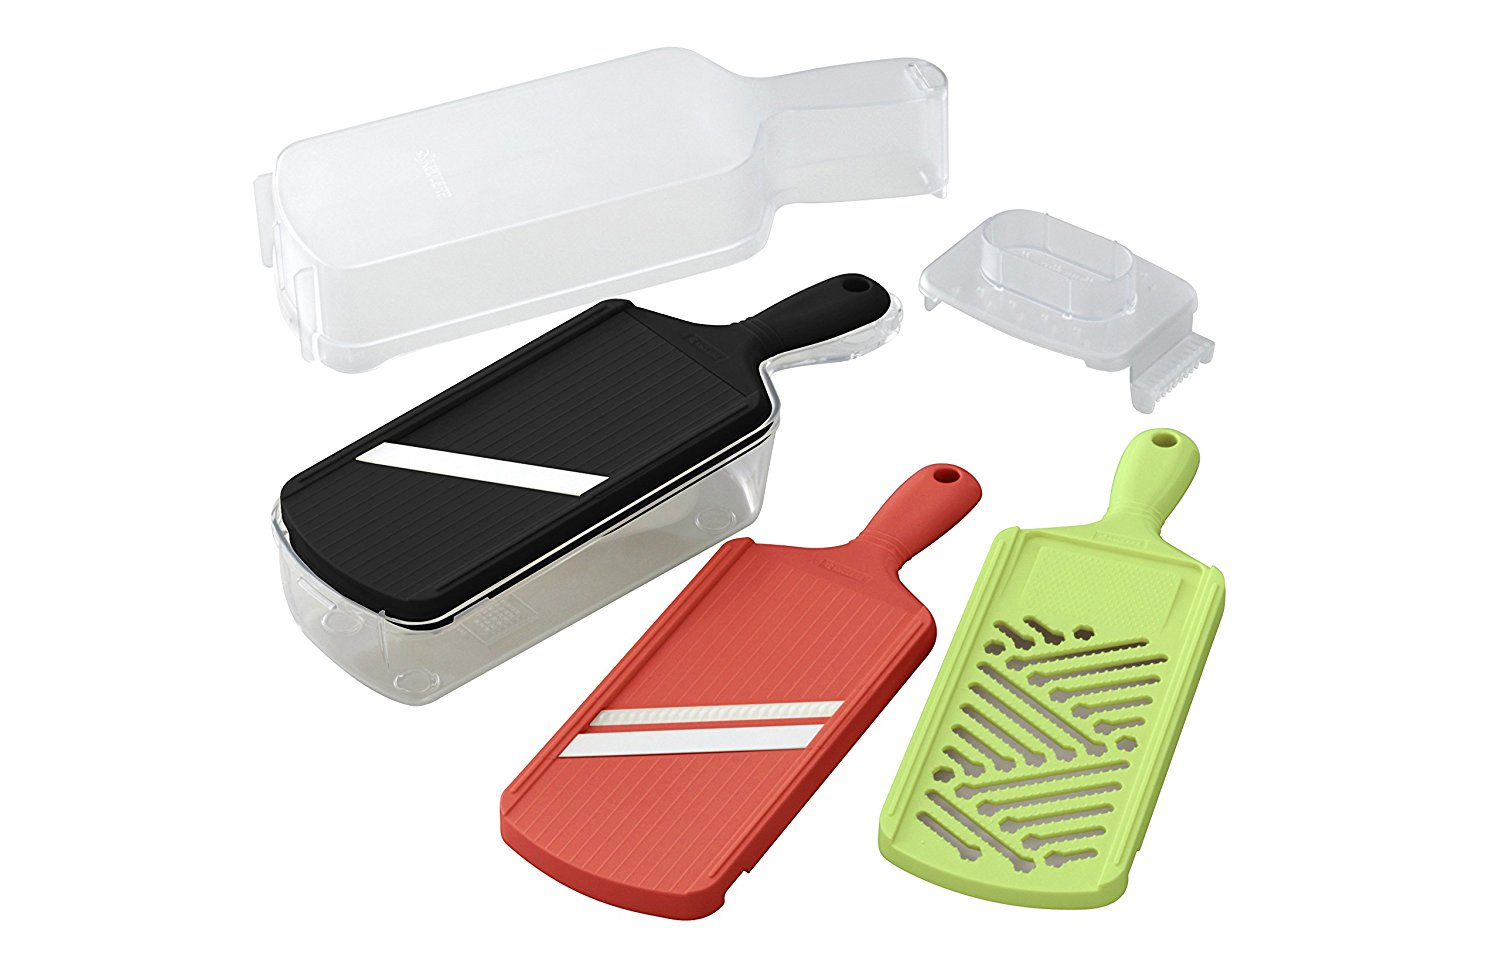 Best Mandoline Slicer-Kyocera Advanced Ceramic Slicer Set